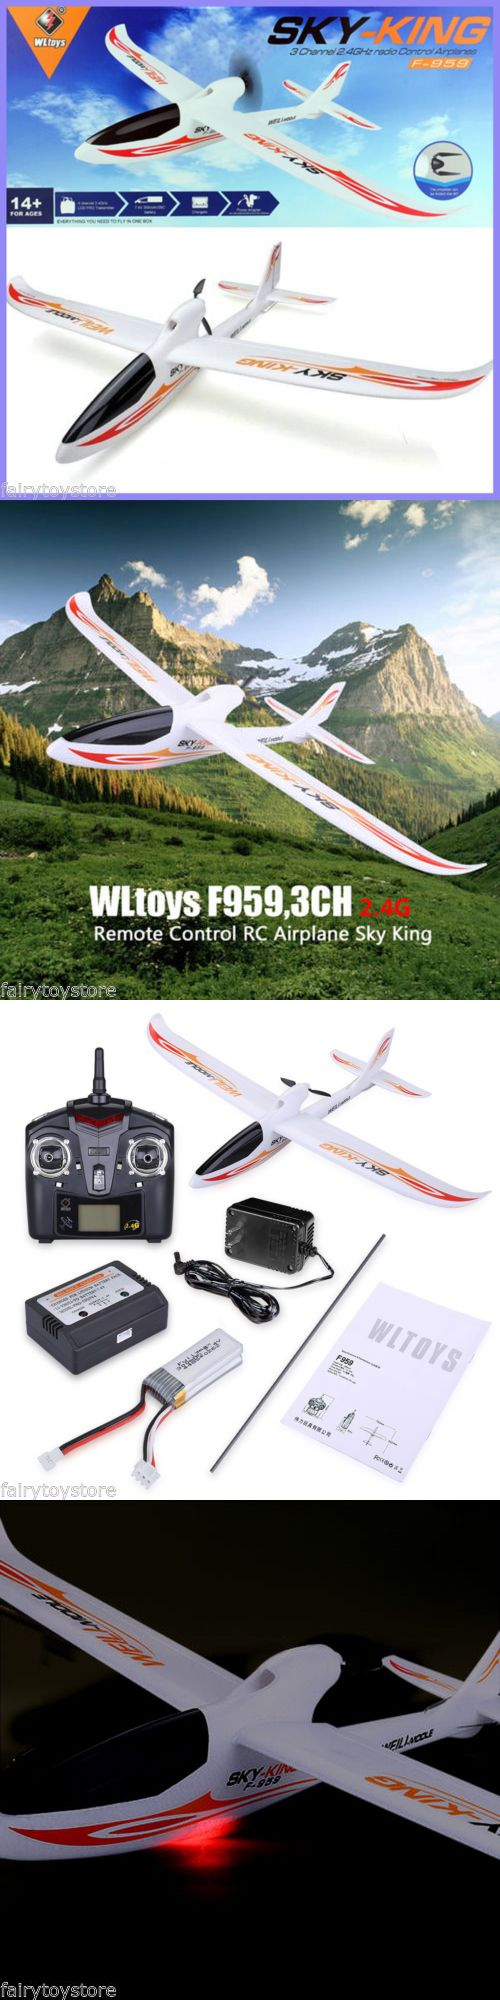 Other RC Model Vehicles and Kits 182186: Wltoys F959 Led Rc Helicopter Aircraft 3Ch 2.4G Rtf Remote Control Airplane Us -> BUY IT NOW ONLY: $45.59 on eBay!